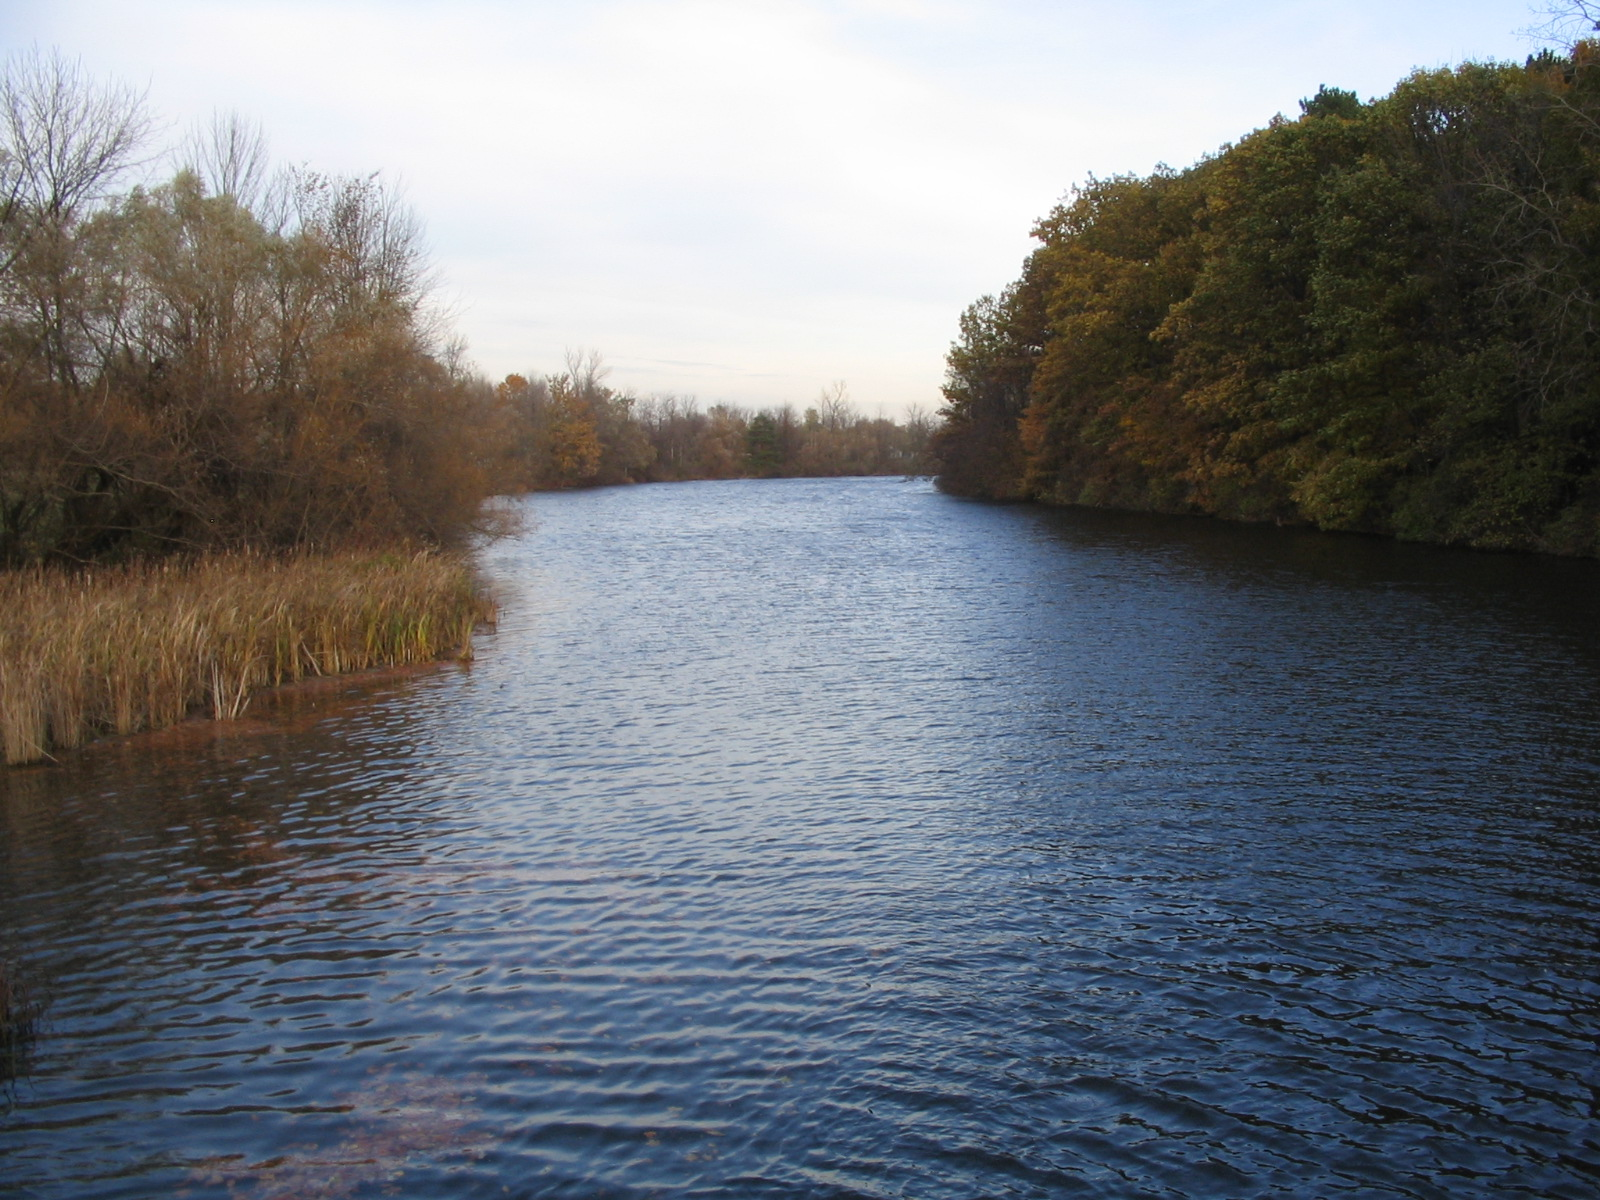 Photograph of the Black Creek at Churchville, NY (CHRN6) looking downstream